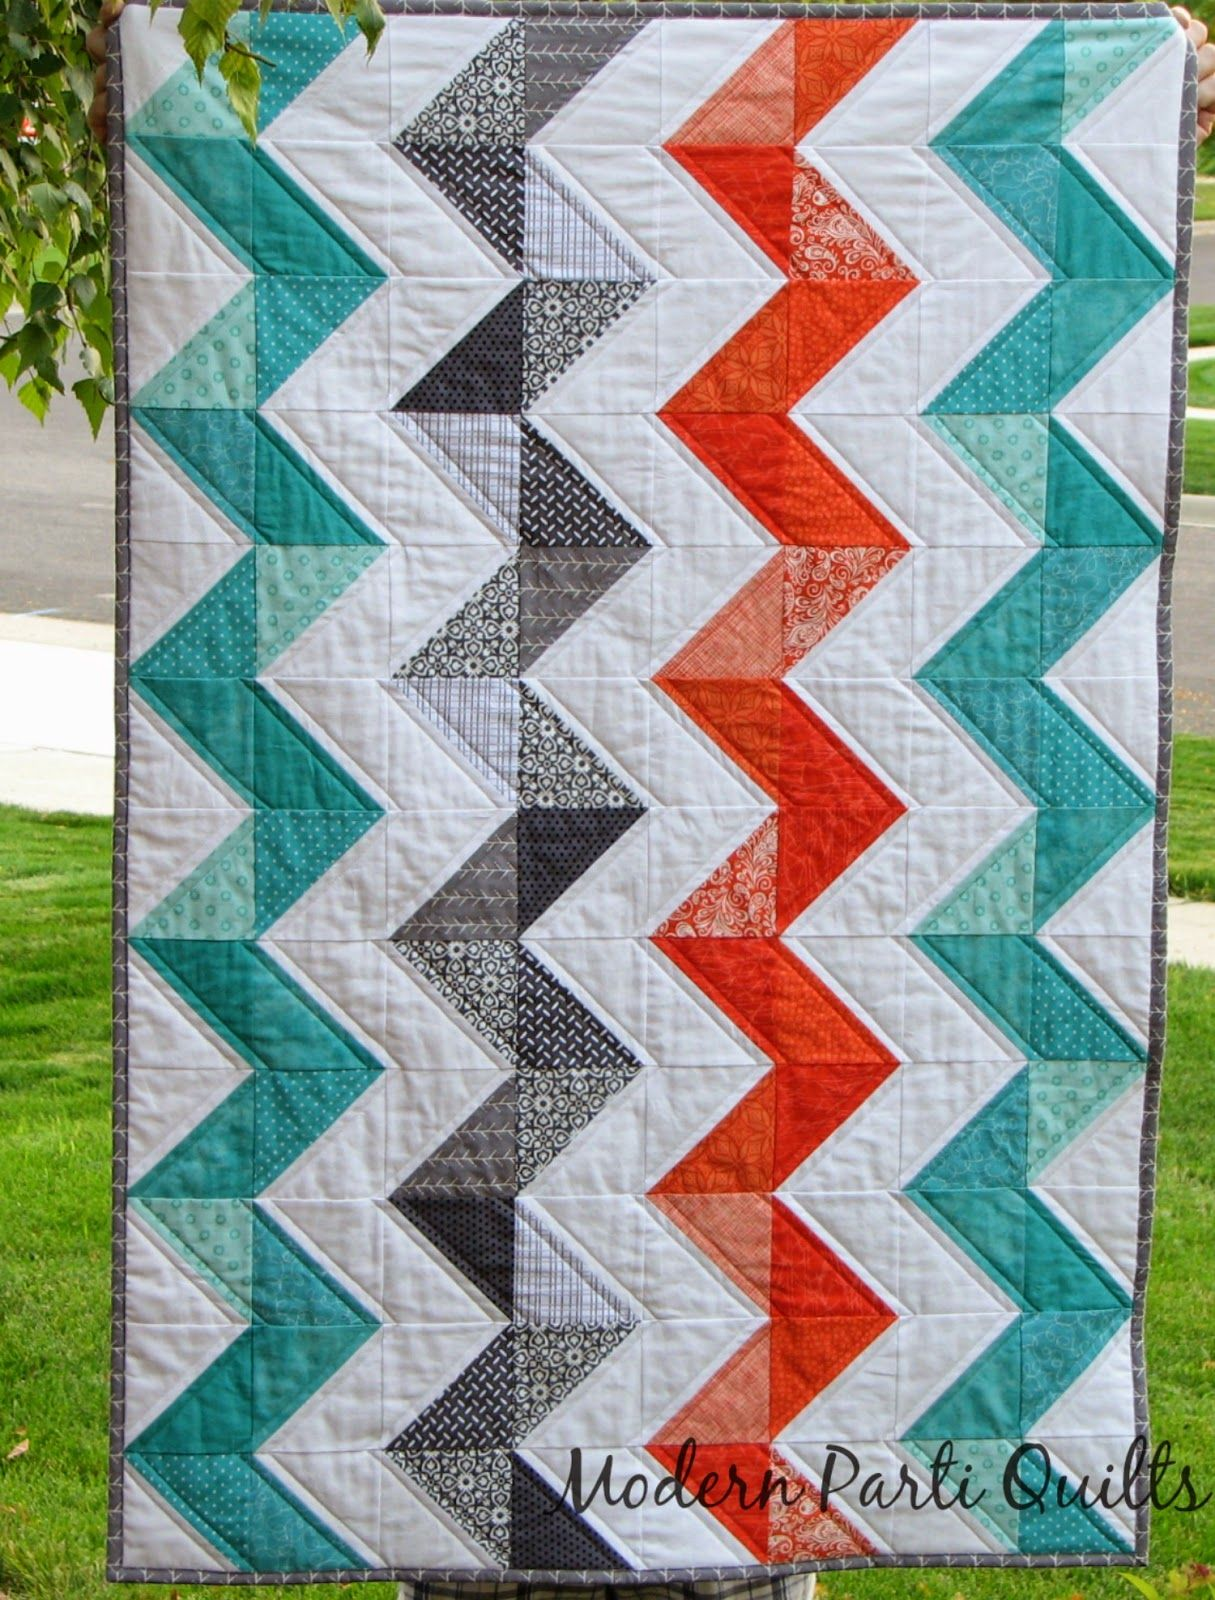 Modern Parti Quilts Vertical Chevron Crib Quilt Tutorial With